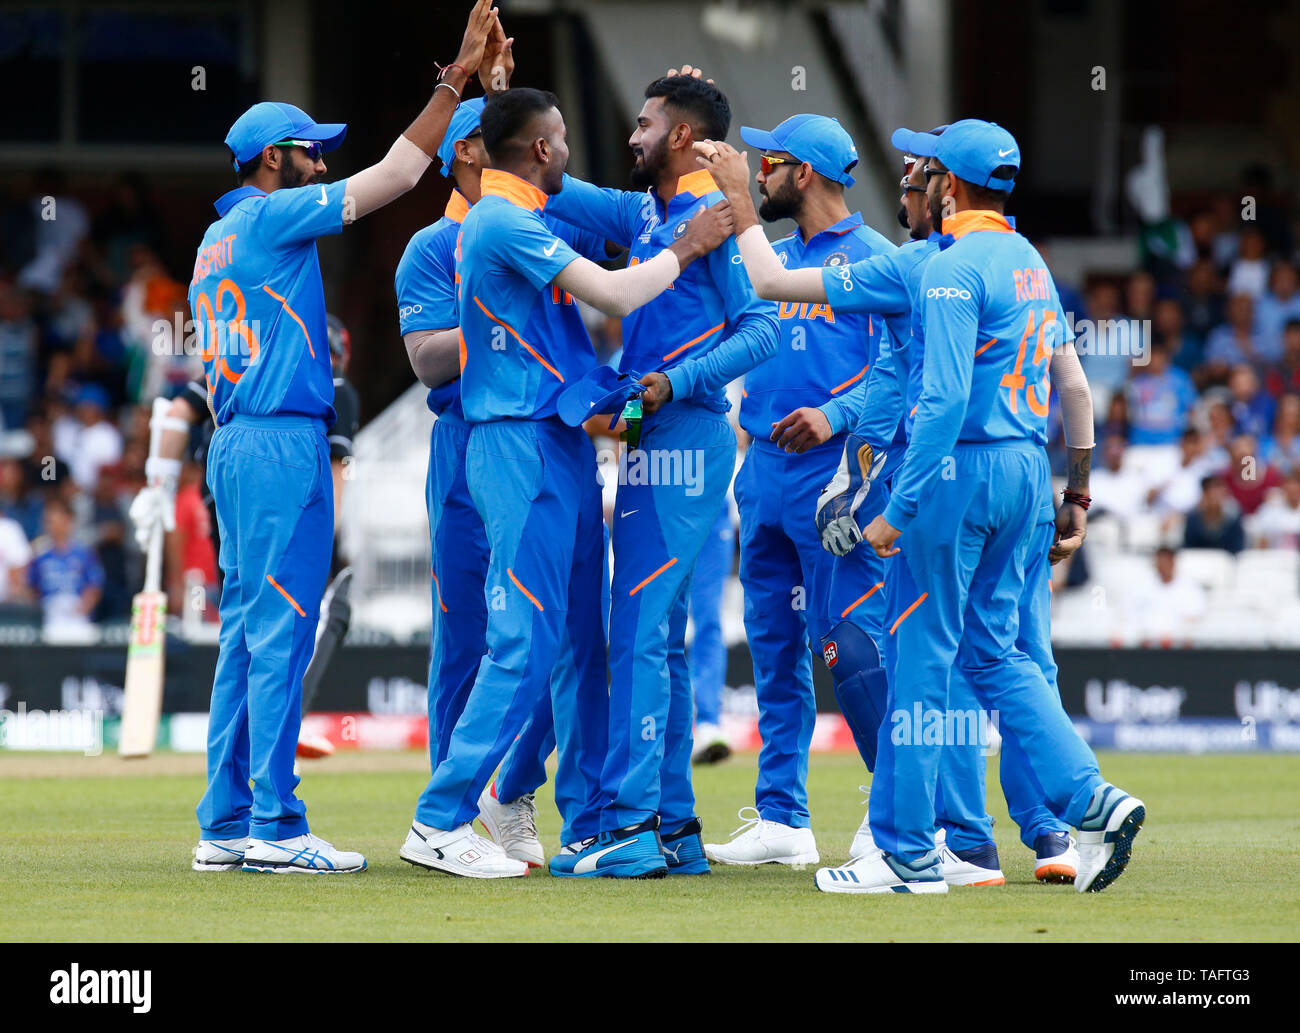 LONDON, United Kingdom. 25 MAY, 2019. KL Rahul of India caught Martin Guptill of New Zealand and bowled by Hardik Pandya of India during ICC World Cup - Warm - Up between India and New Zealand at the Oval Stadium , London,  on 25 May 2019 Credit Action Foto Sport News News Credit: Action Foto Sport/Alamy Live News - Stock Image